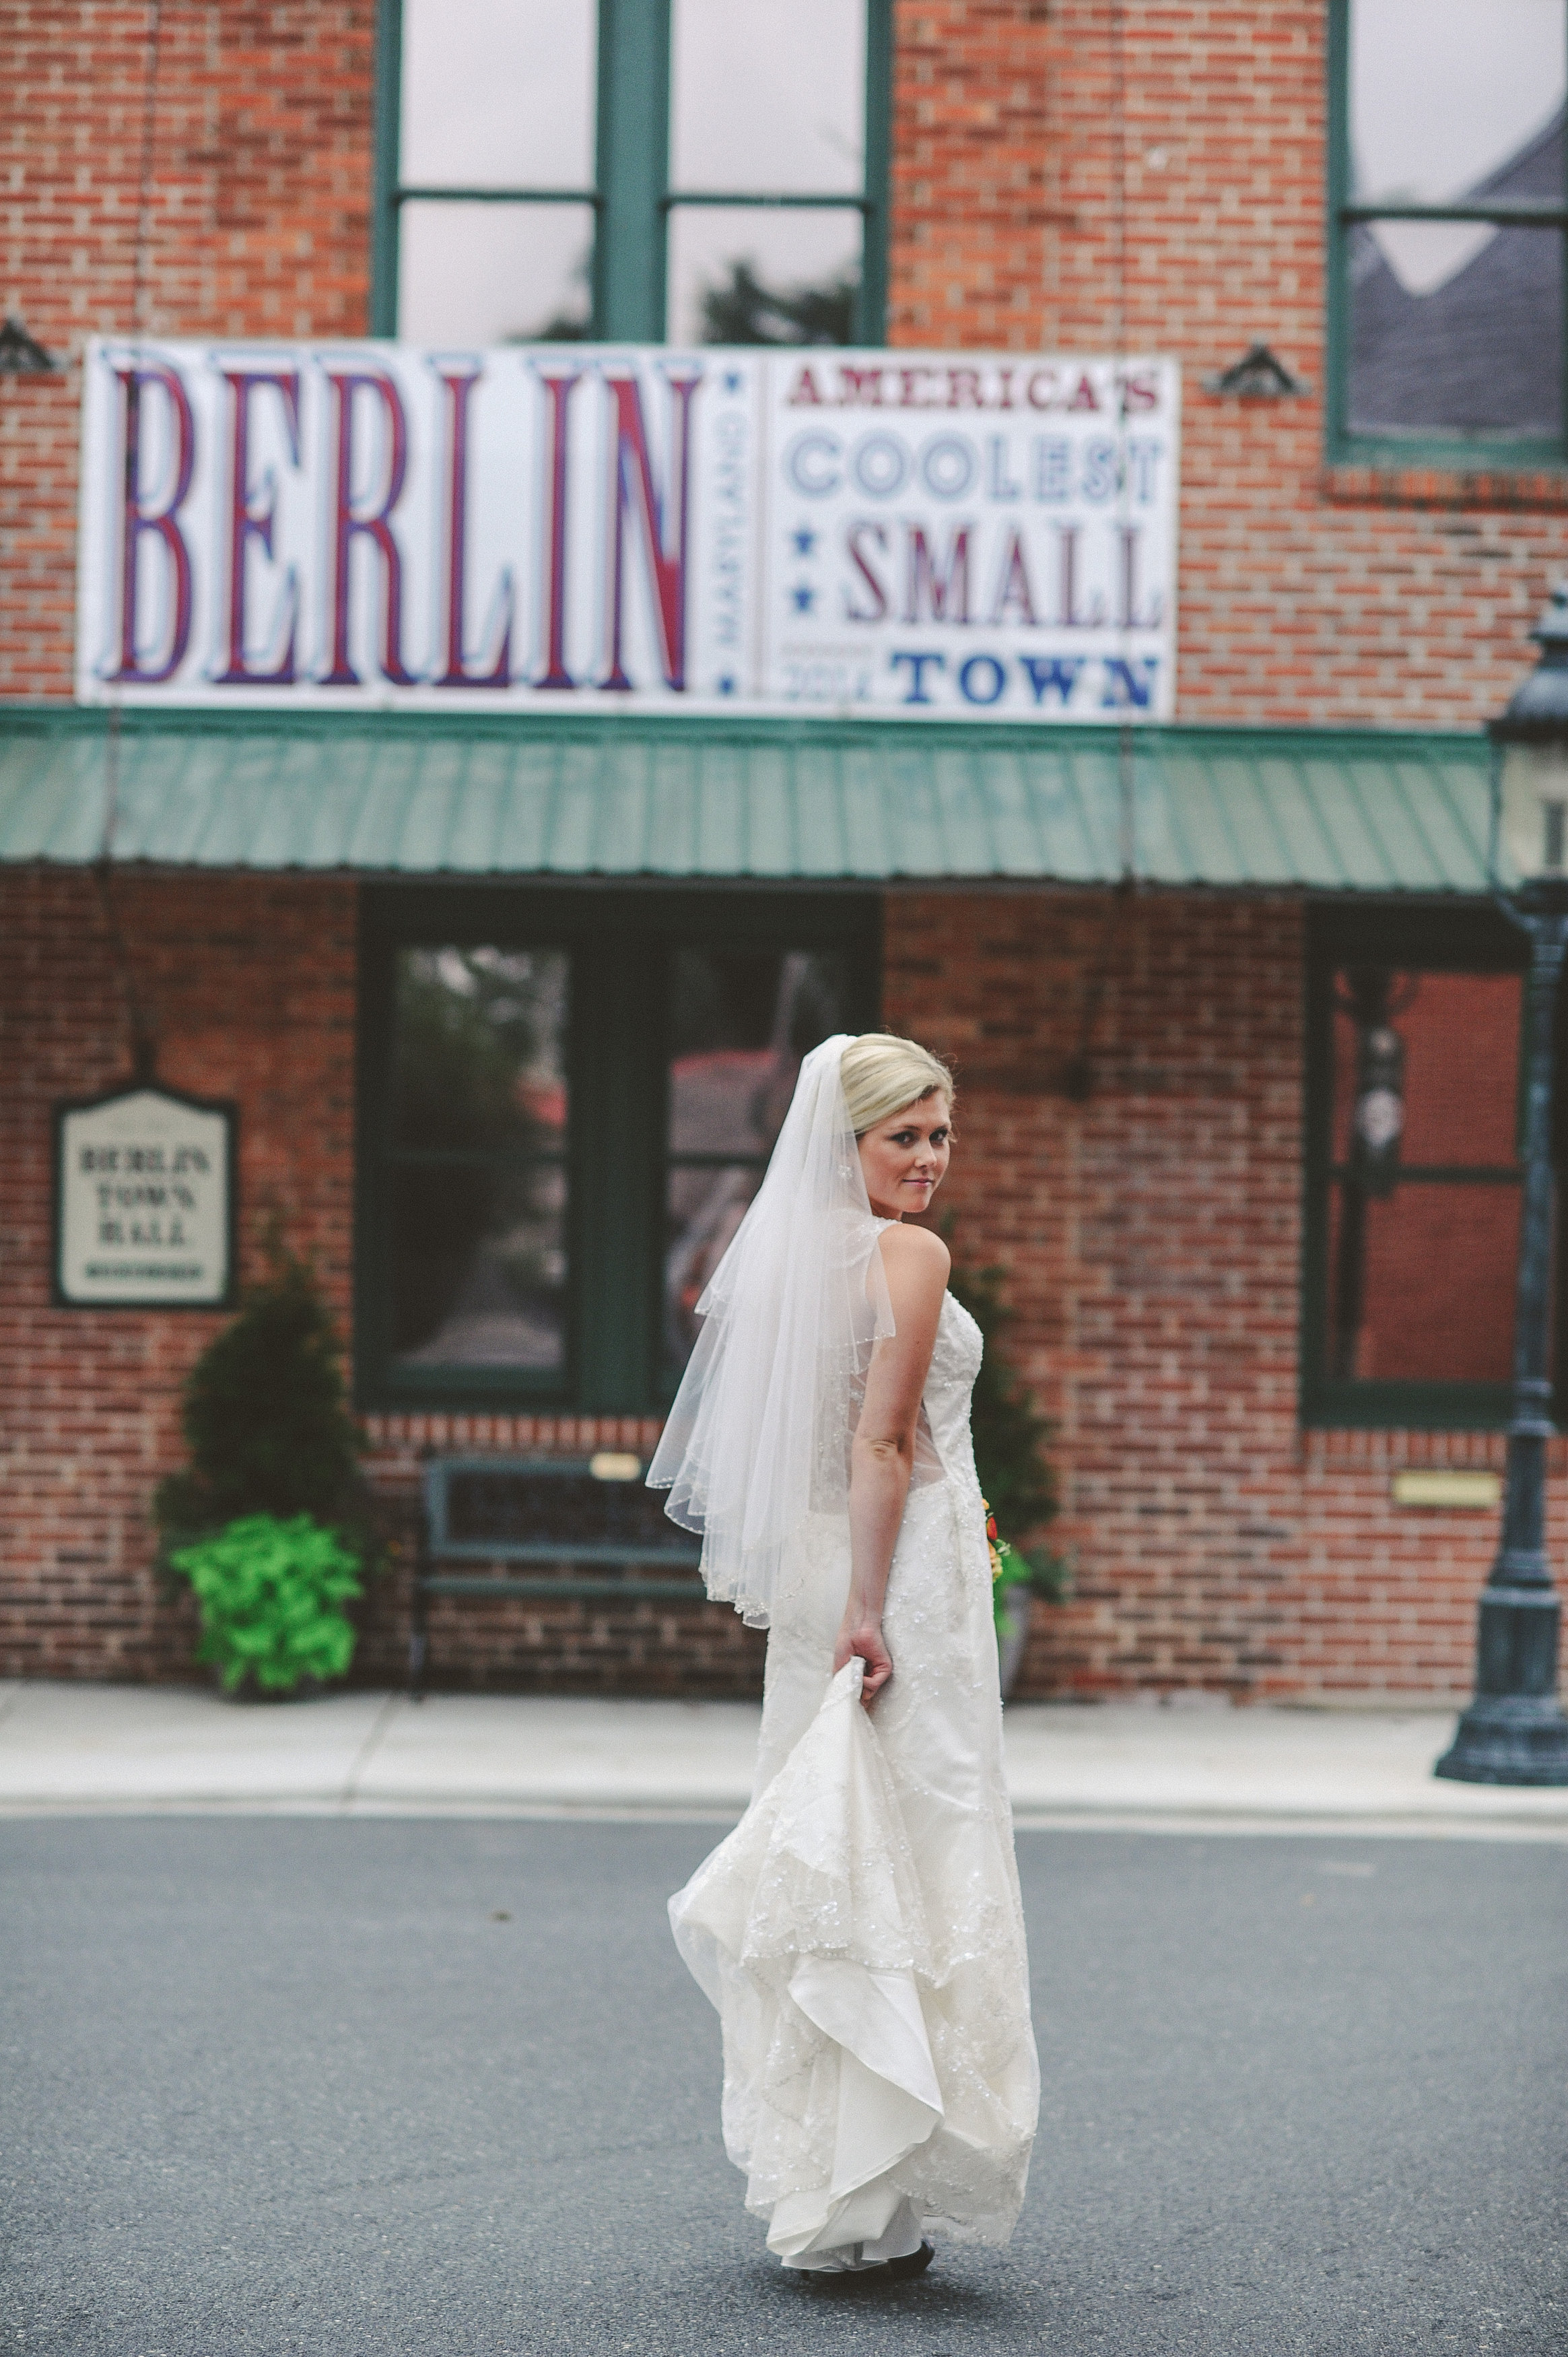 Weddings Main   The Atlantic Hotel   Historic Berlin MD Bride wearing Bustle Bridal Gown on the street of Berlin MD Americas  Coolest Small Town